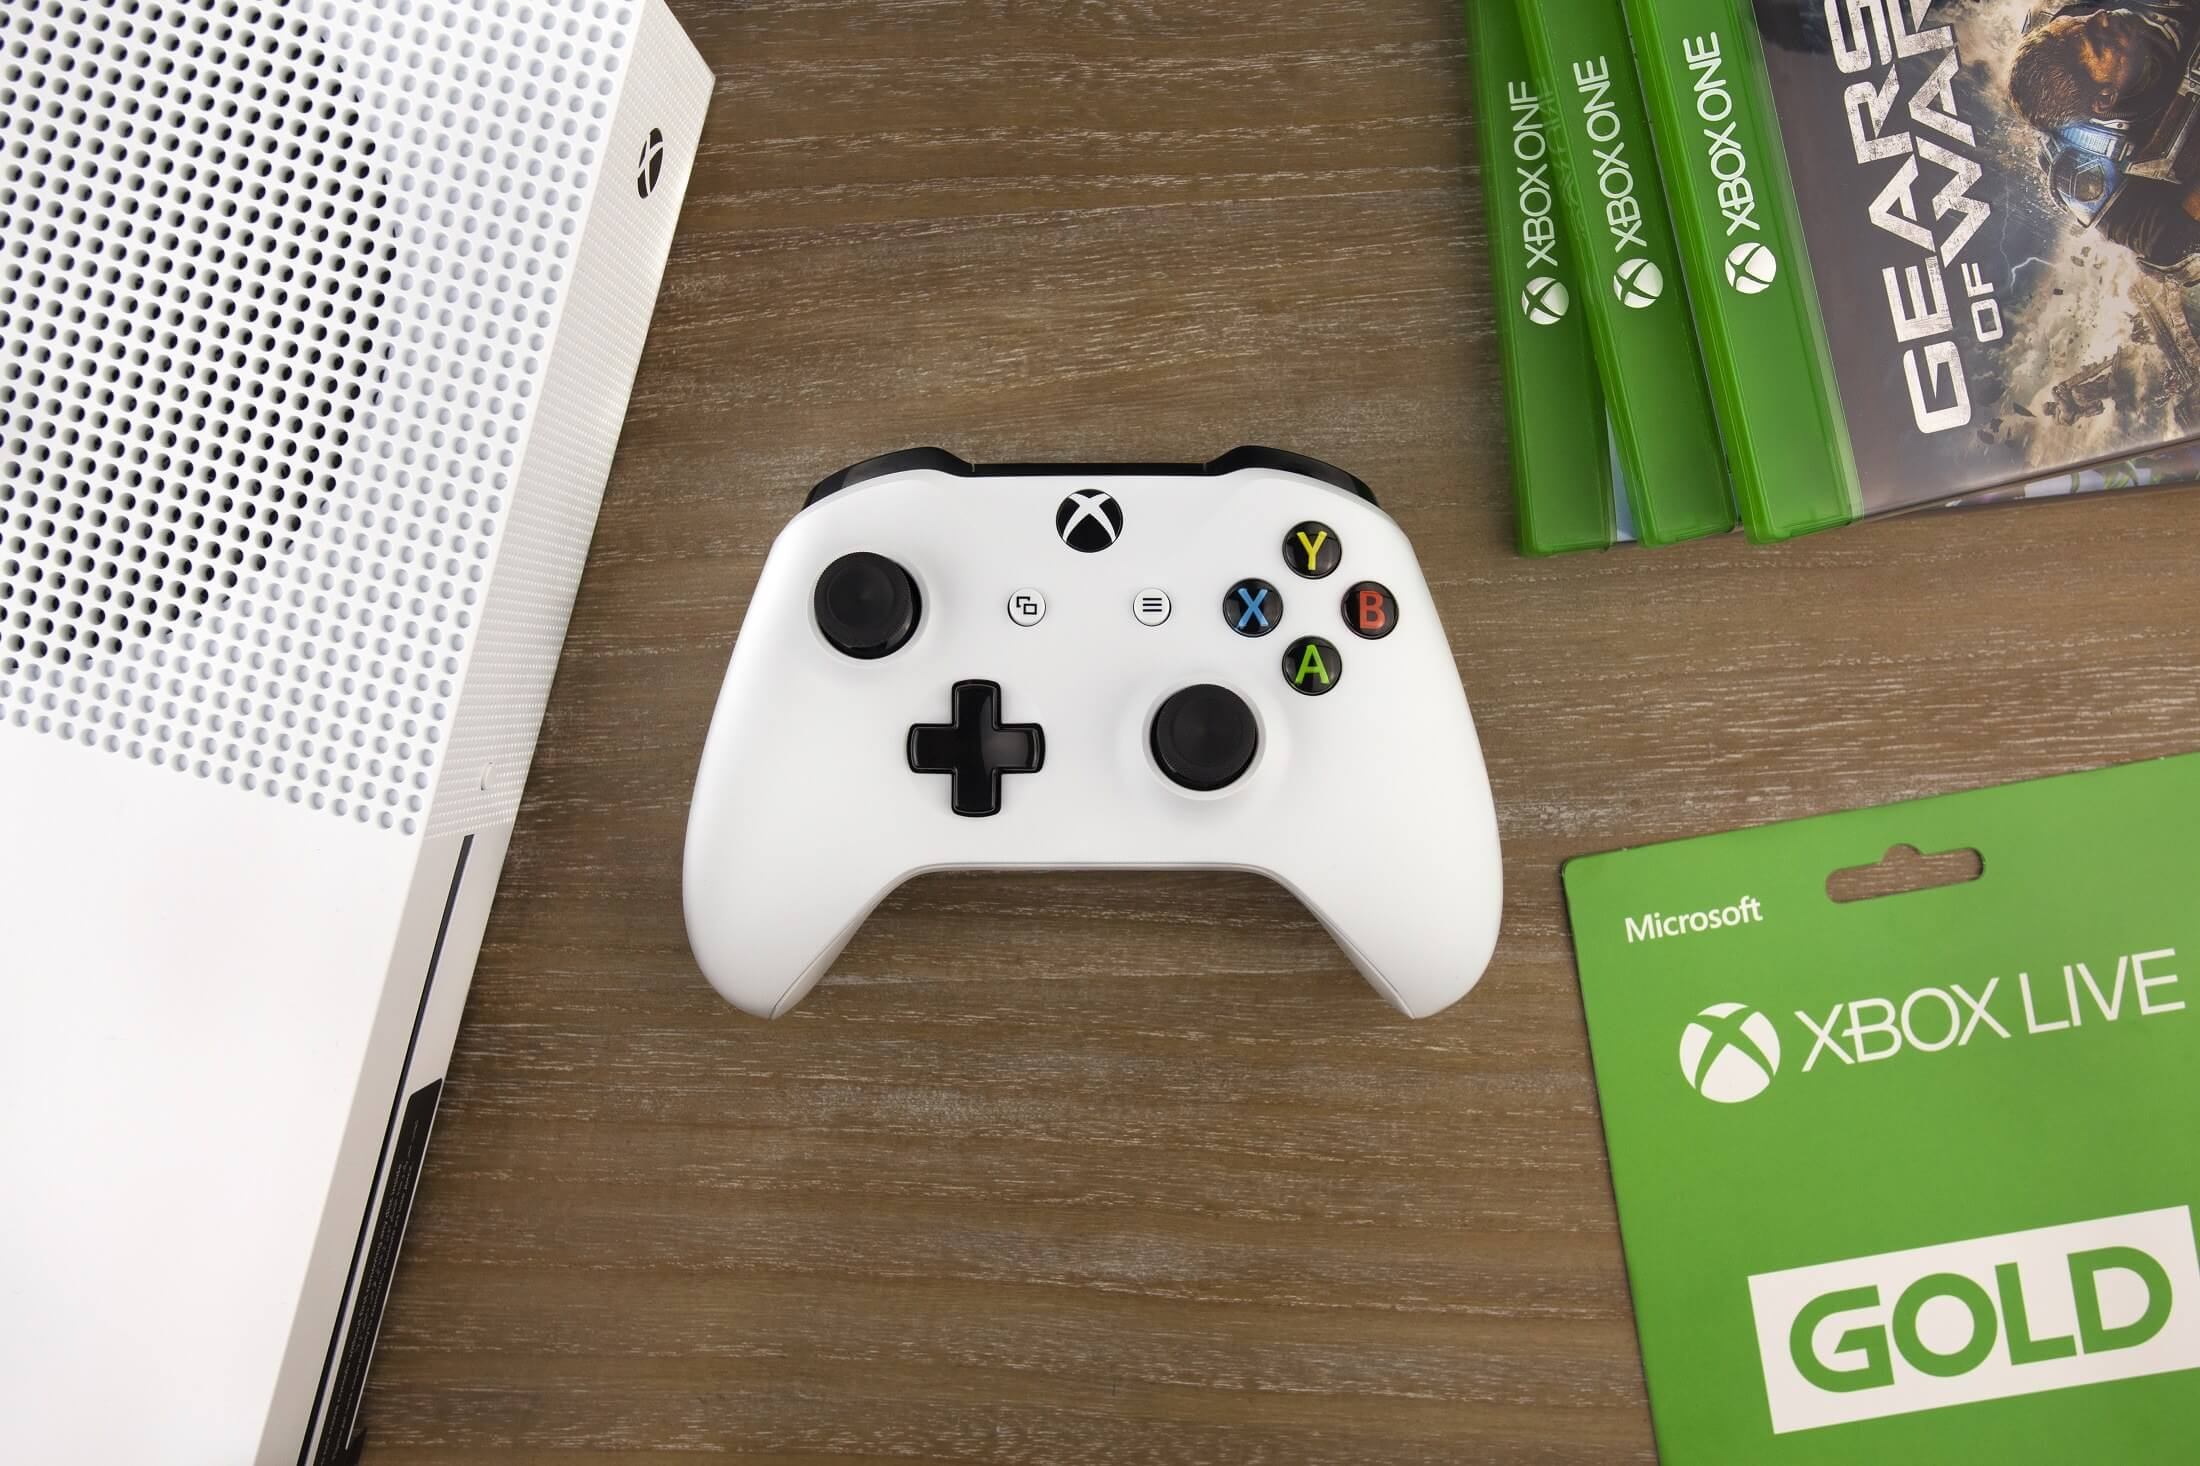 Microsoft is working to expand cross-platform play on iOS, Android